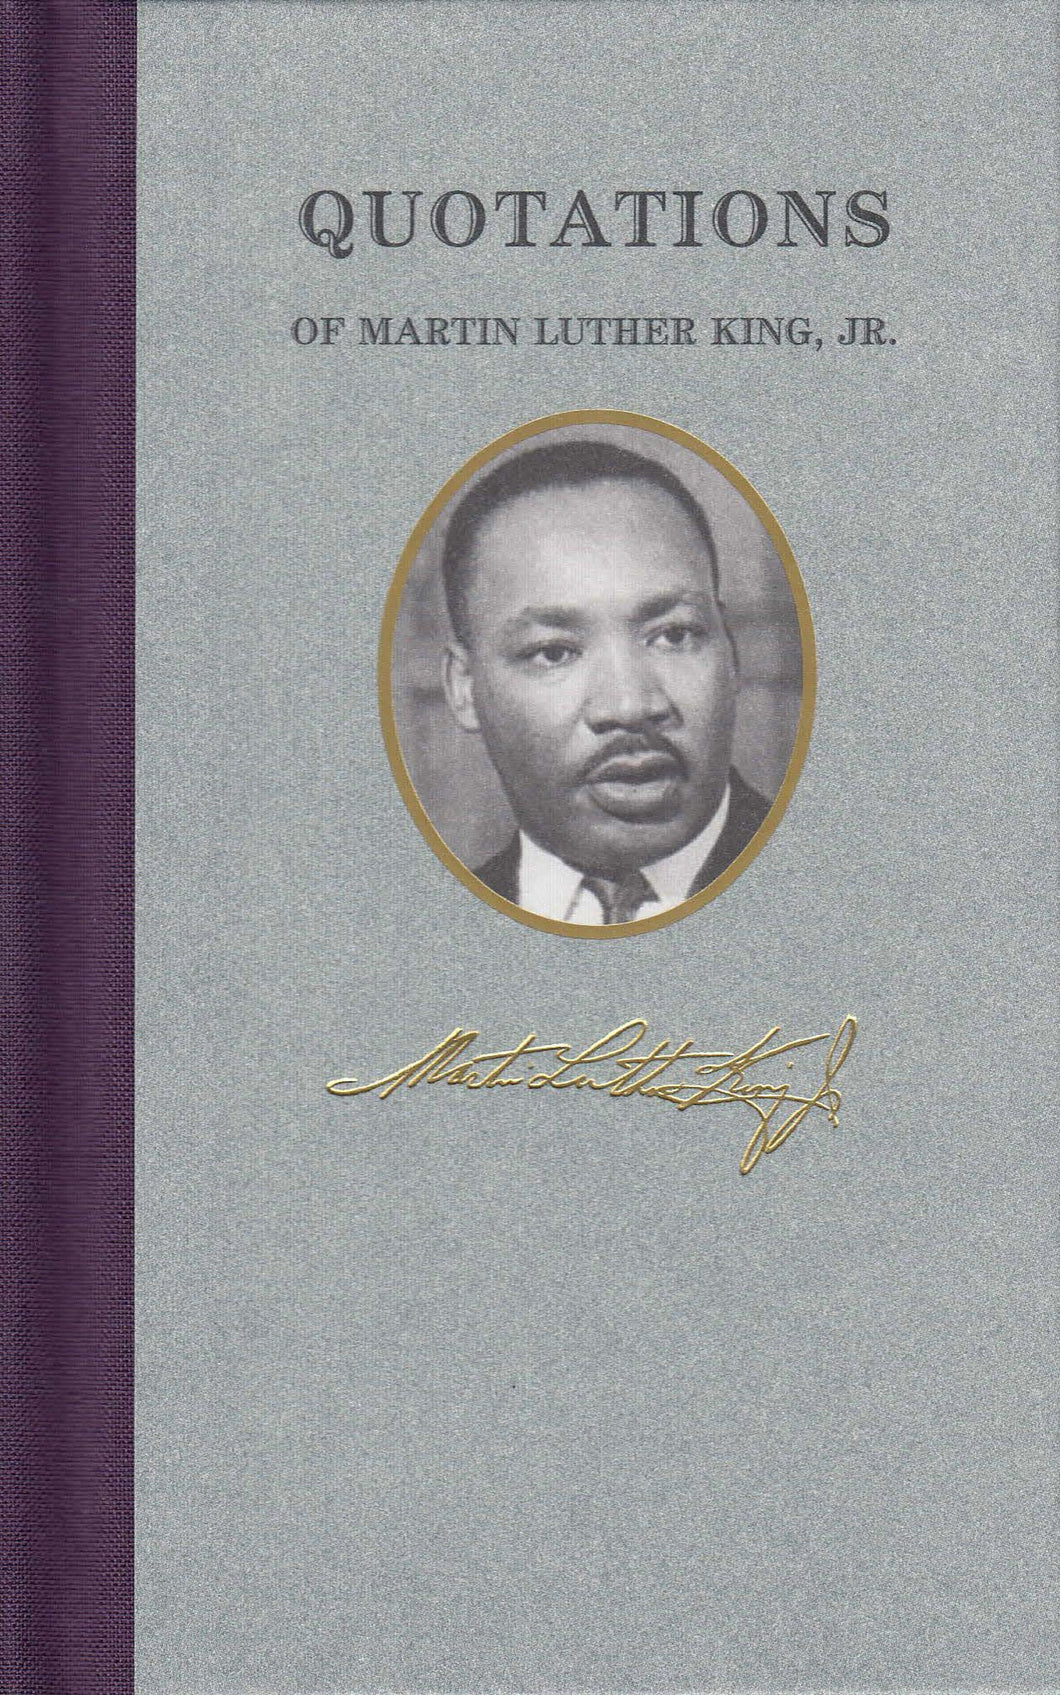 Quotations of Dr. Martin Luther King, Jr.